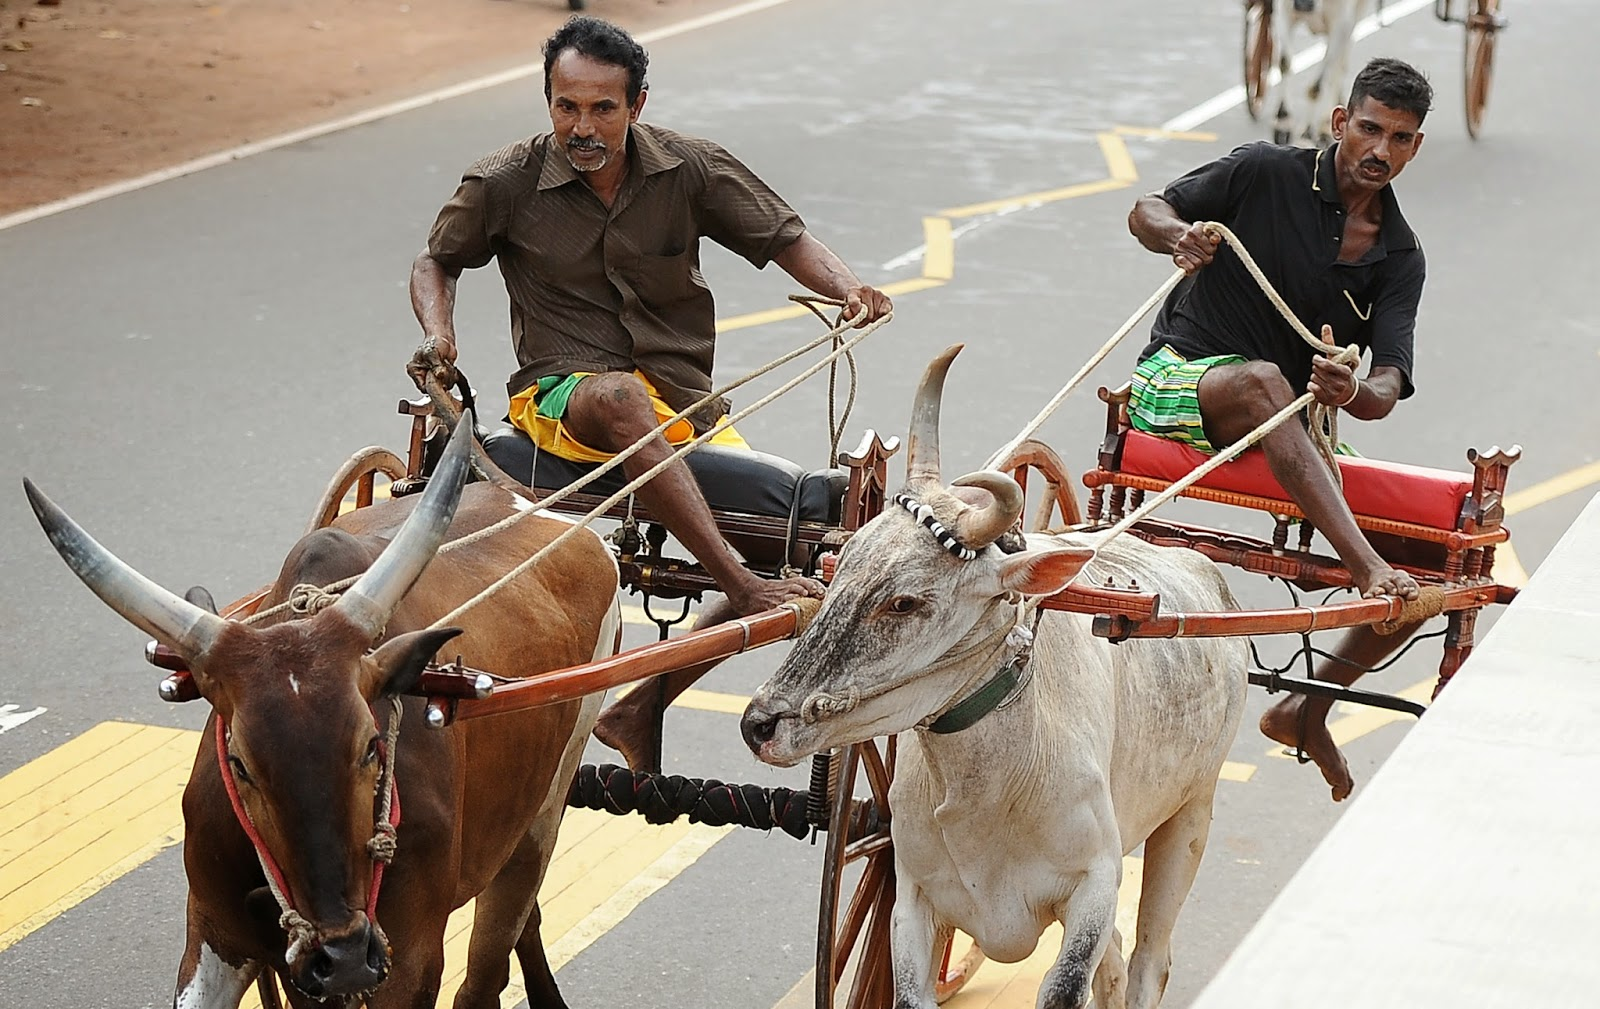 Animals, Bull Cart Race, Bull Race, Cart Race, Colombo, Culture, Game, Homagama, Lifestyle, Minority, New Year, News, Religious, Sinhala and Tamil New Year, Sinhalese, Sri Lanka, Tamils, Traditional, Traditional Games,